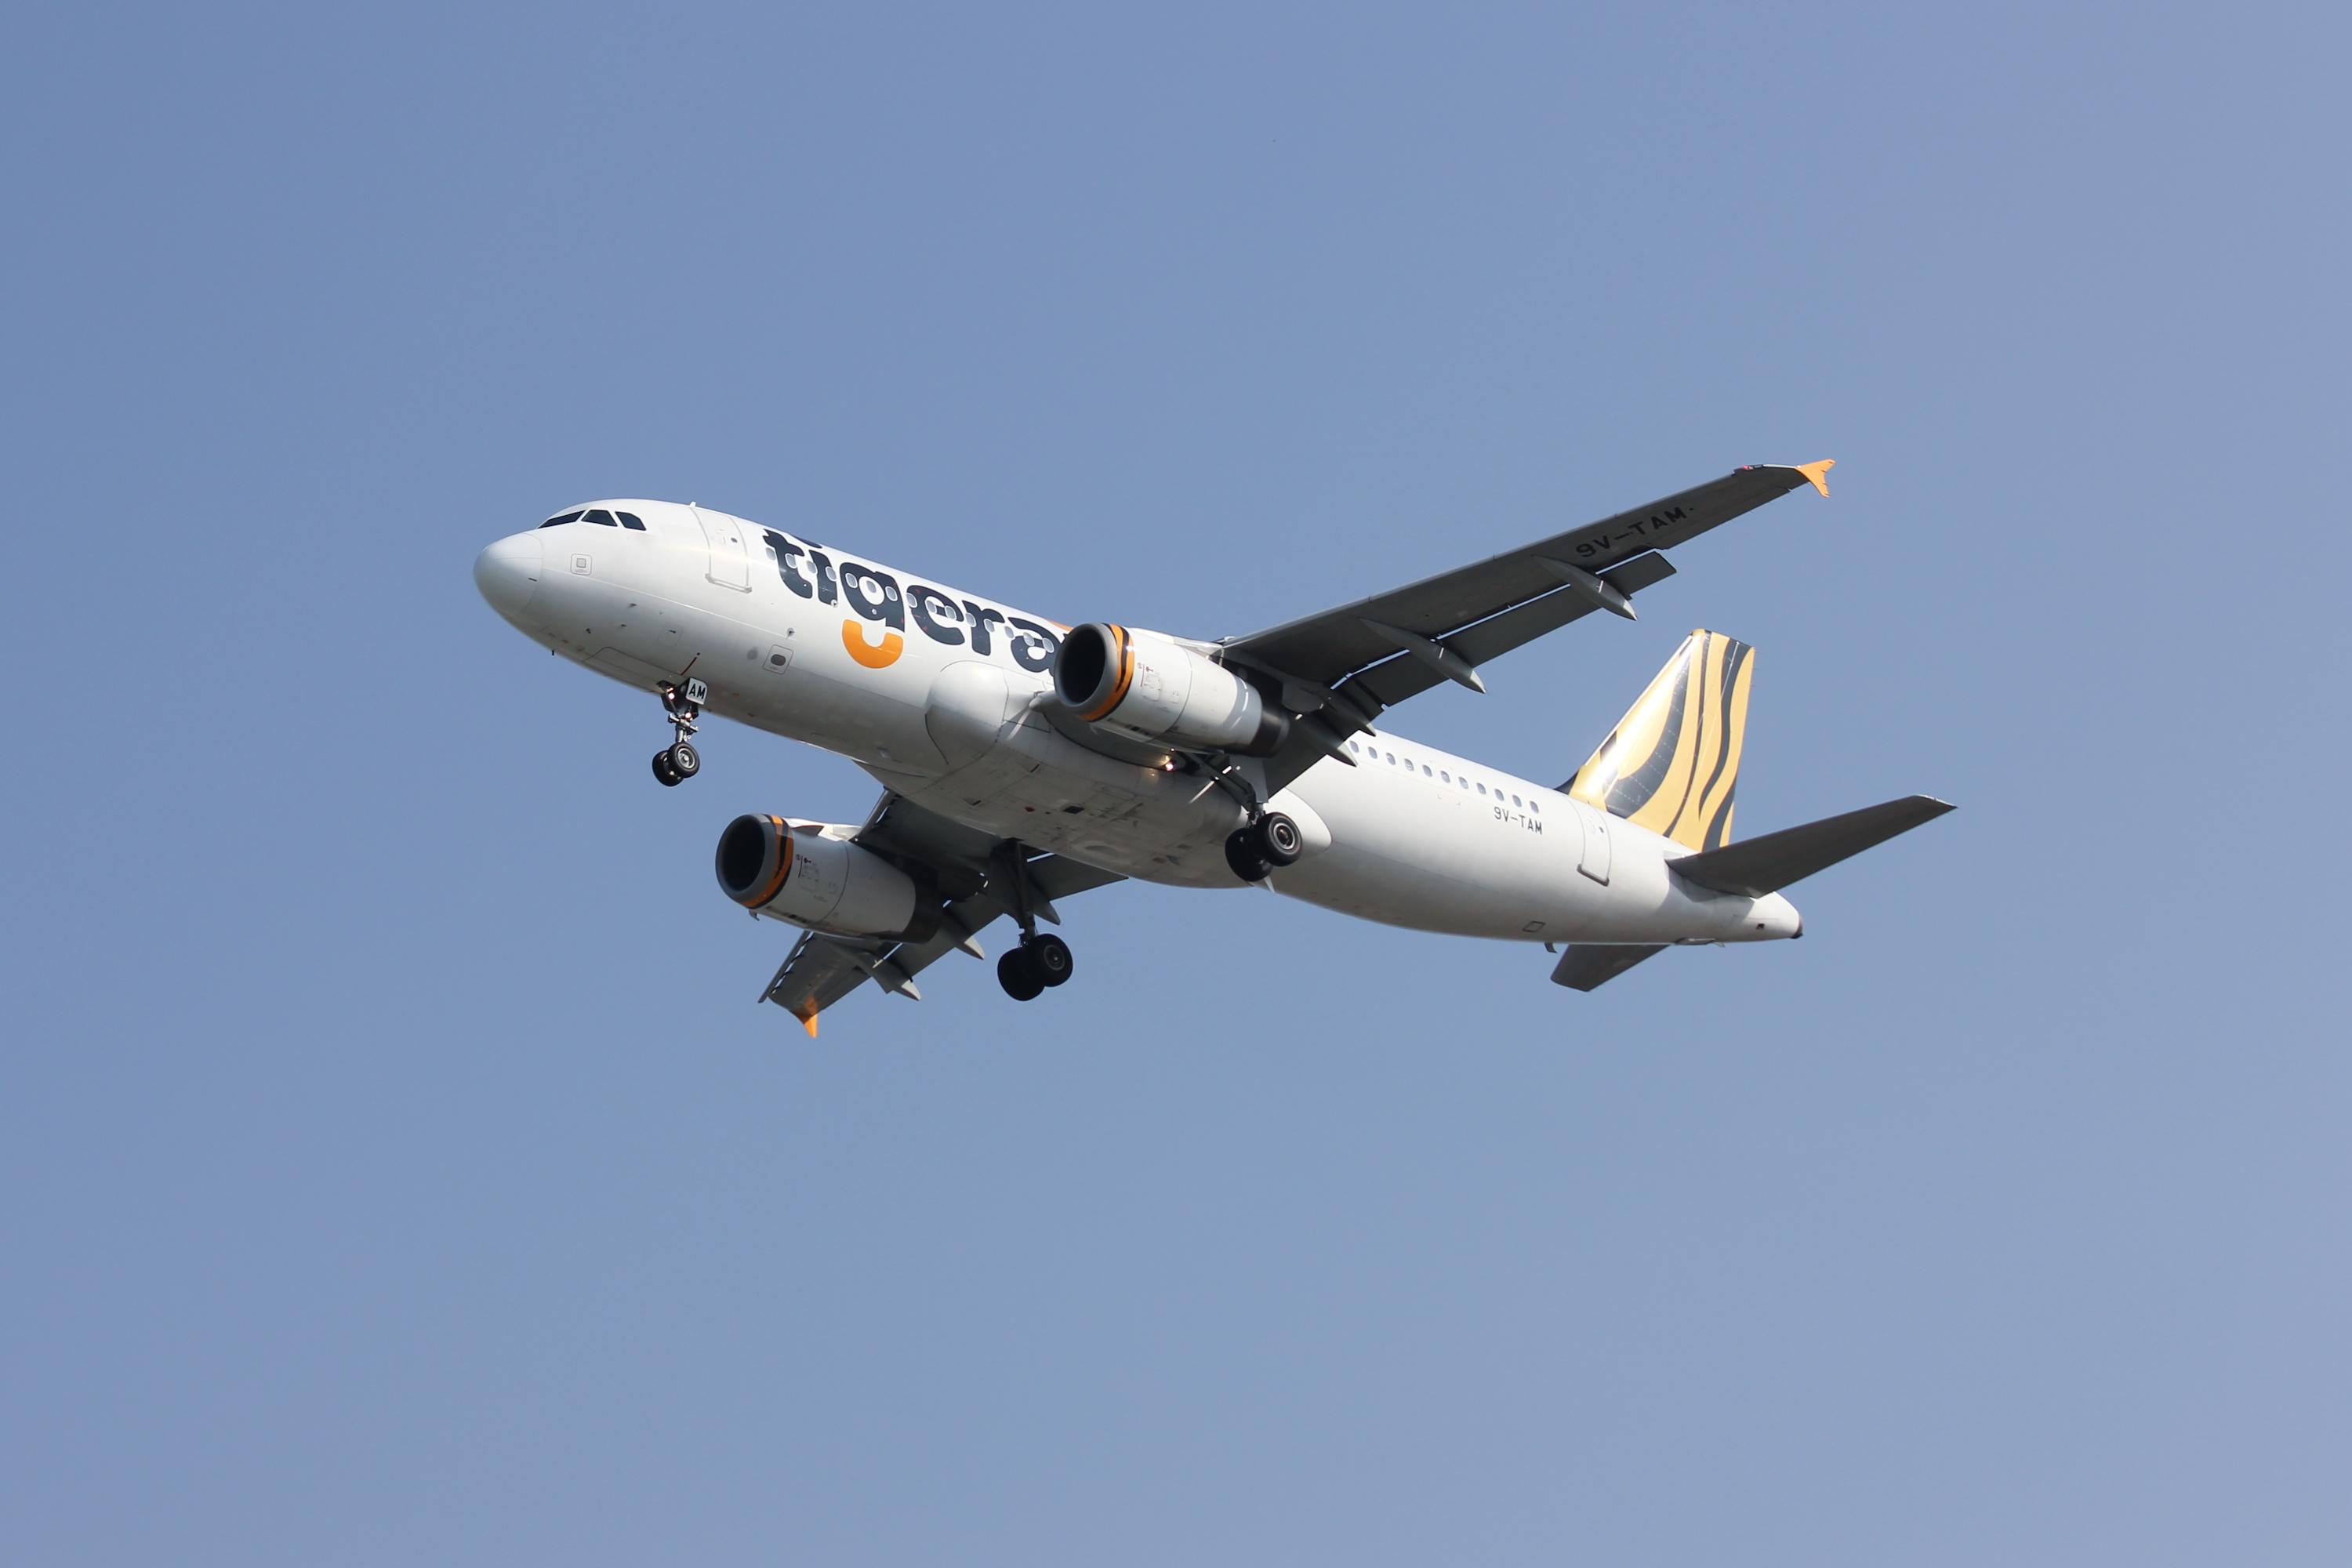 Tigerair's famous $1 return flights are back